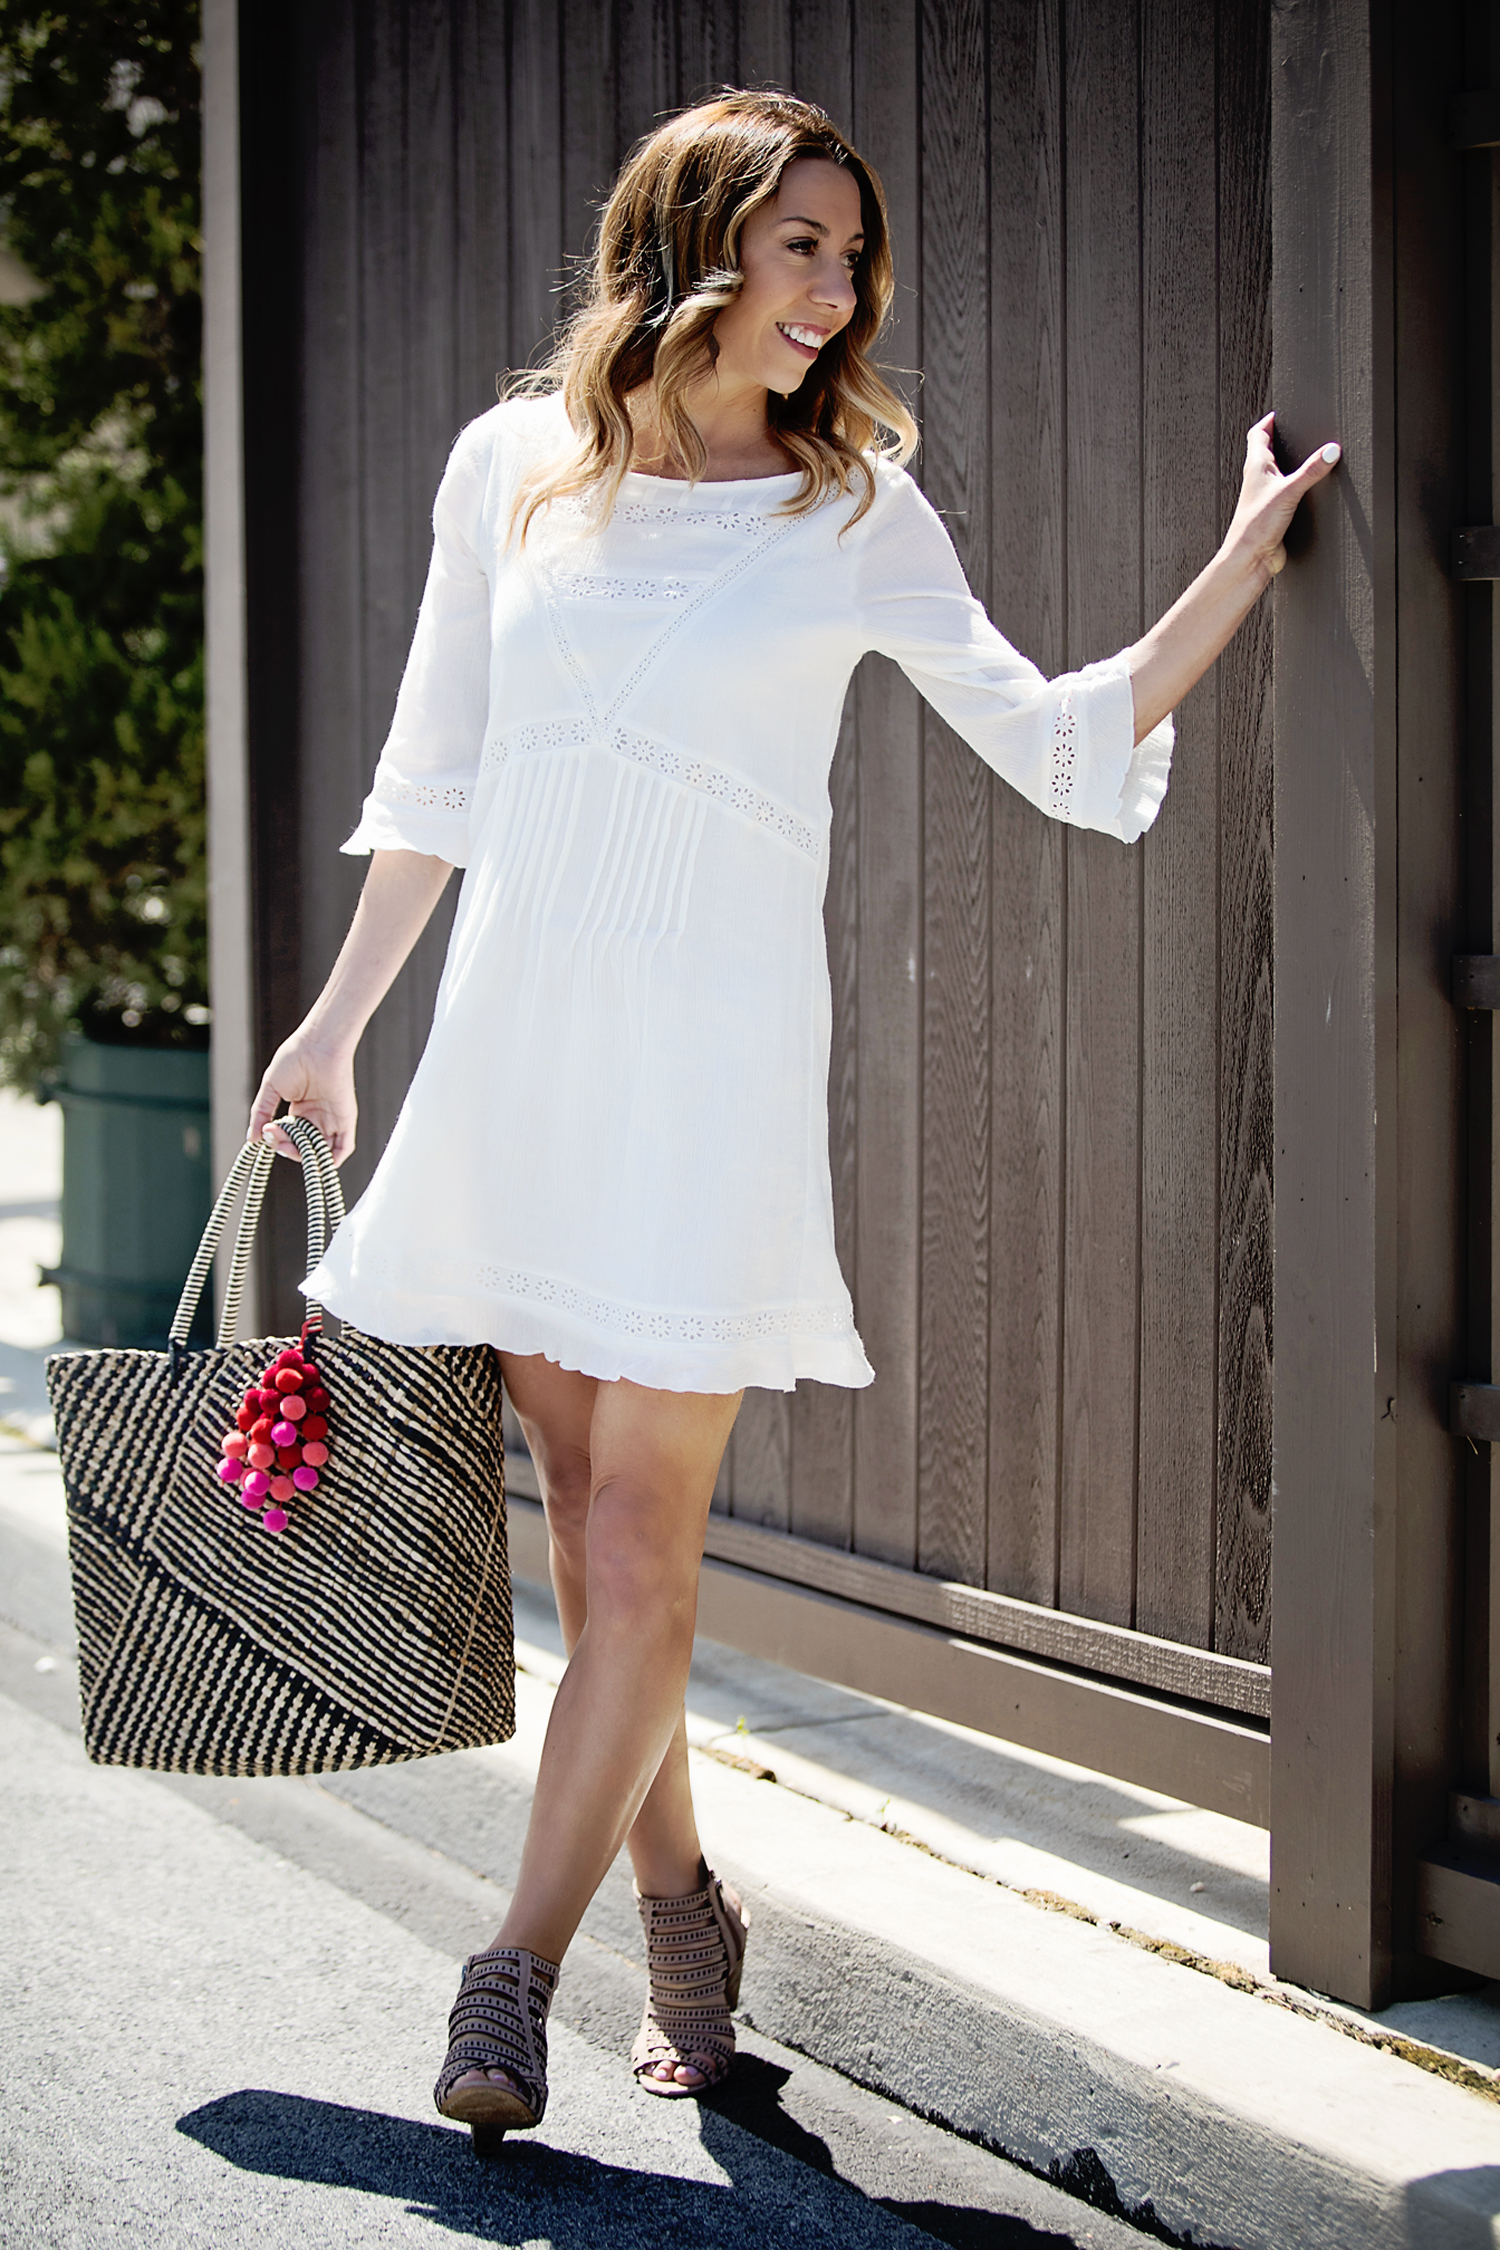 The Motherchic wearing white dress from macy's friends and family sale